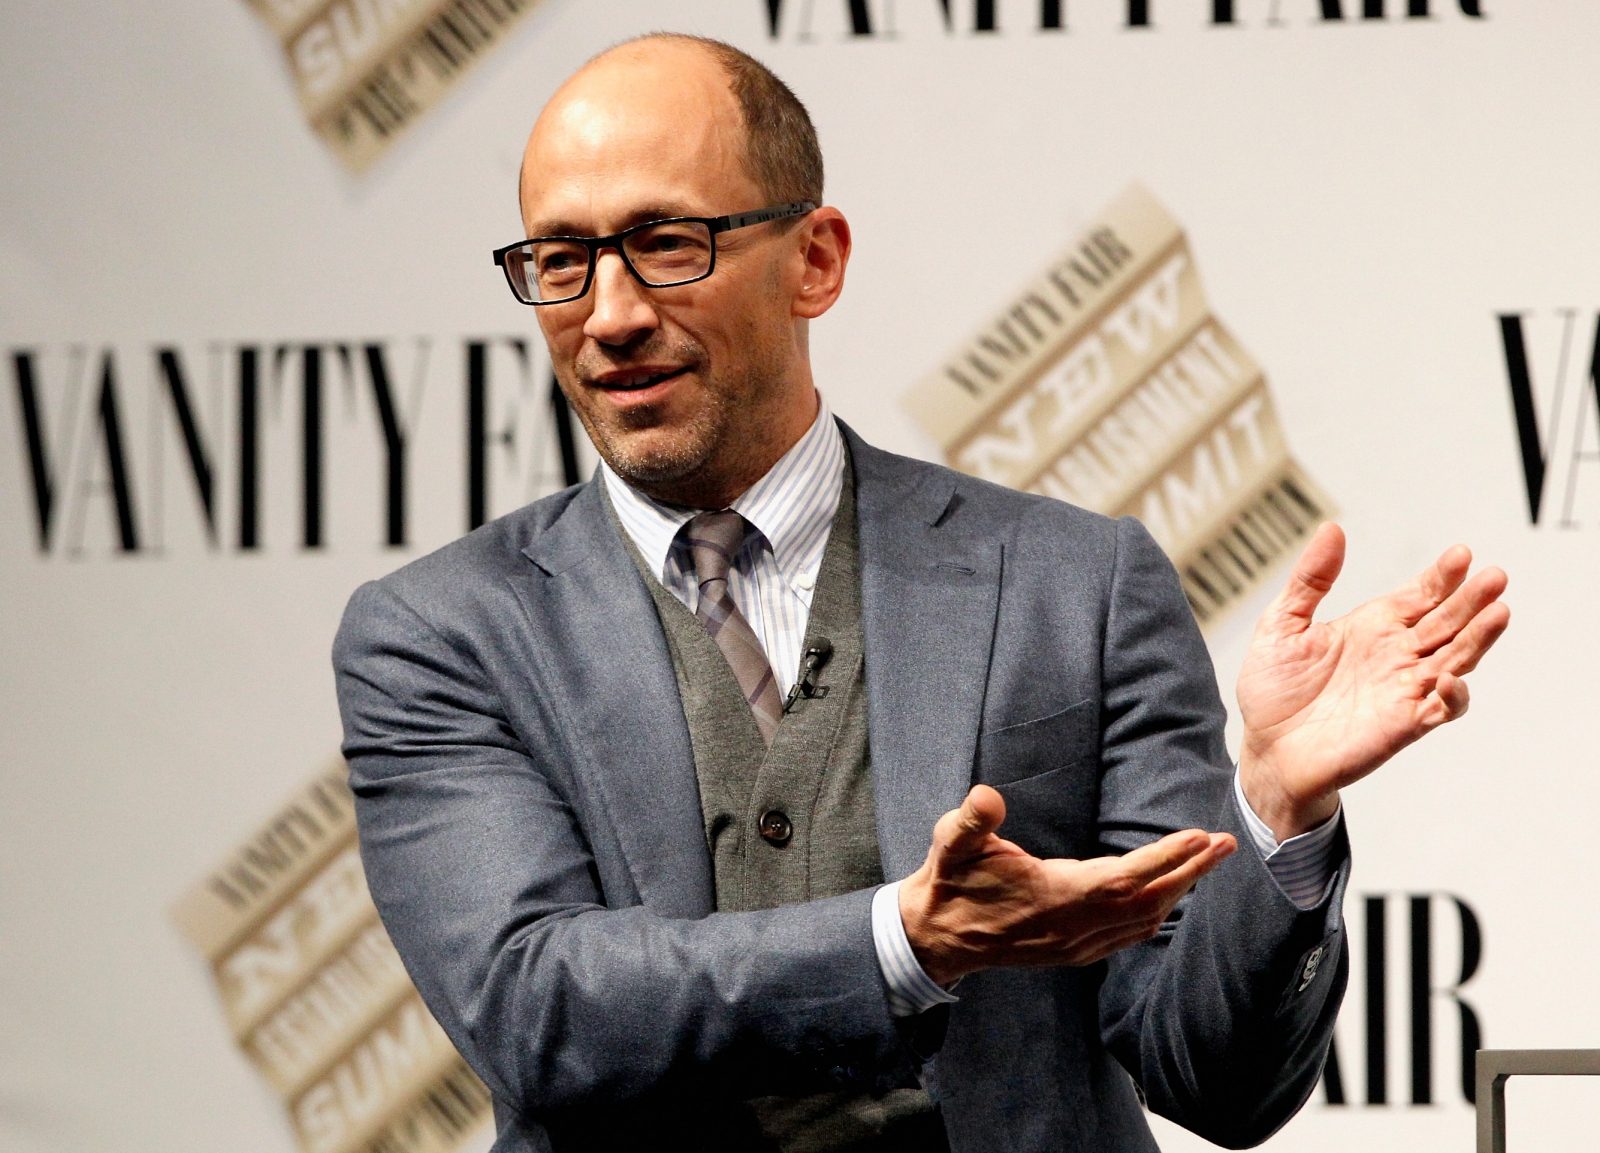 Dick Costolo Resignation